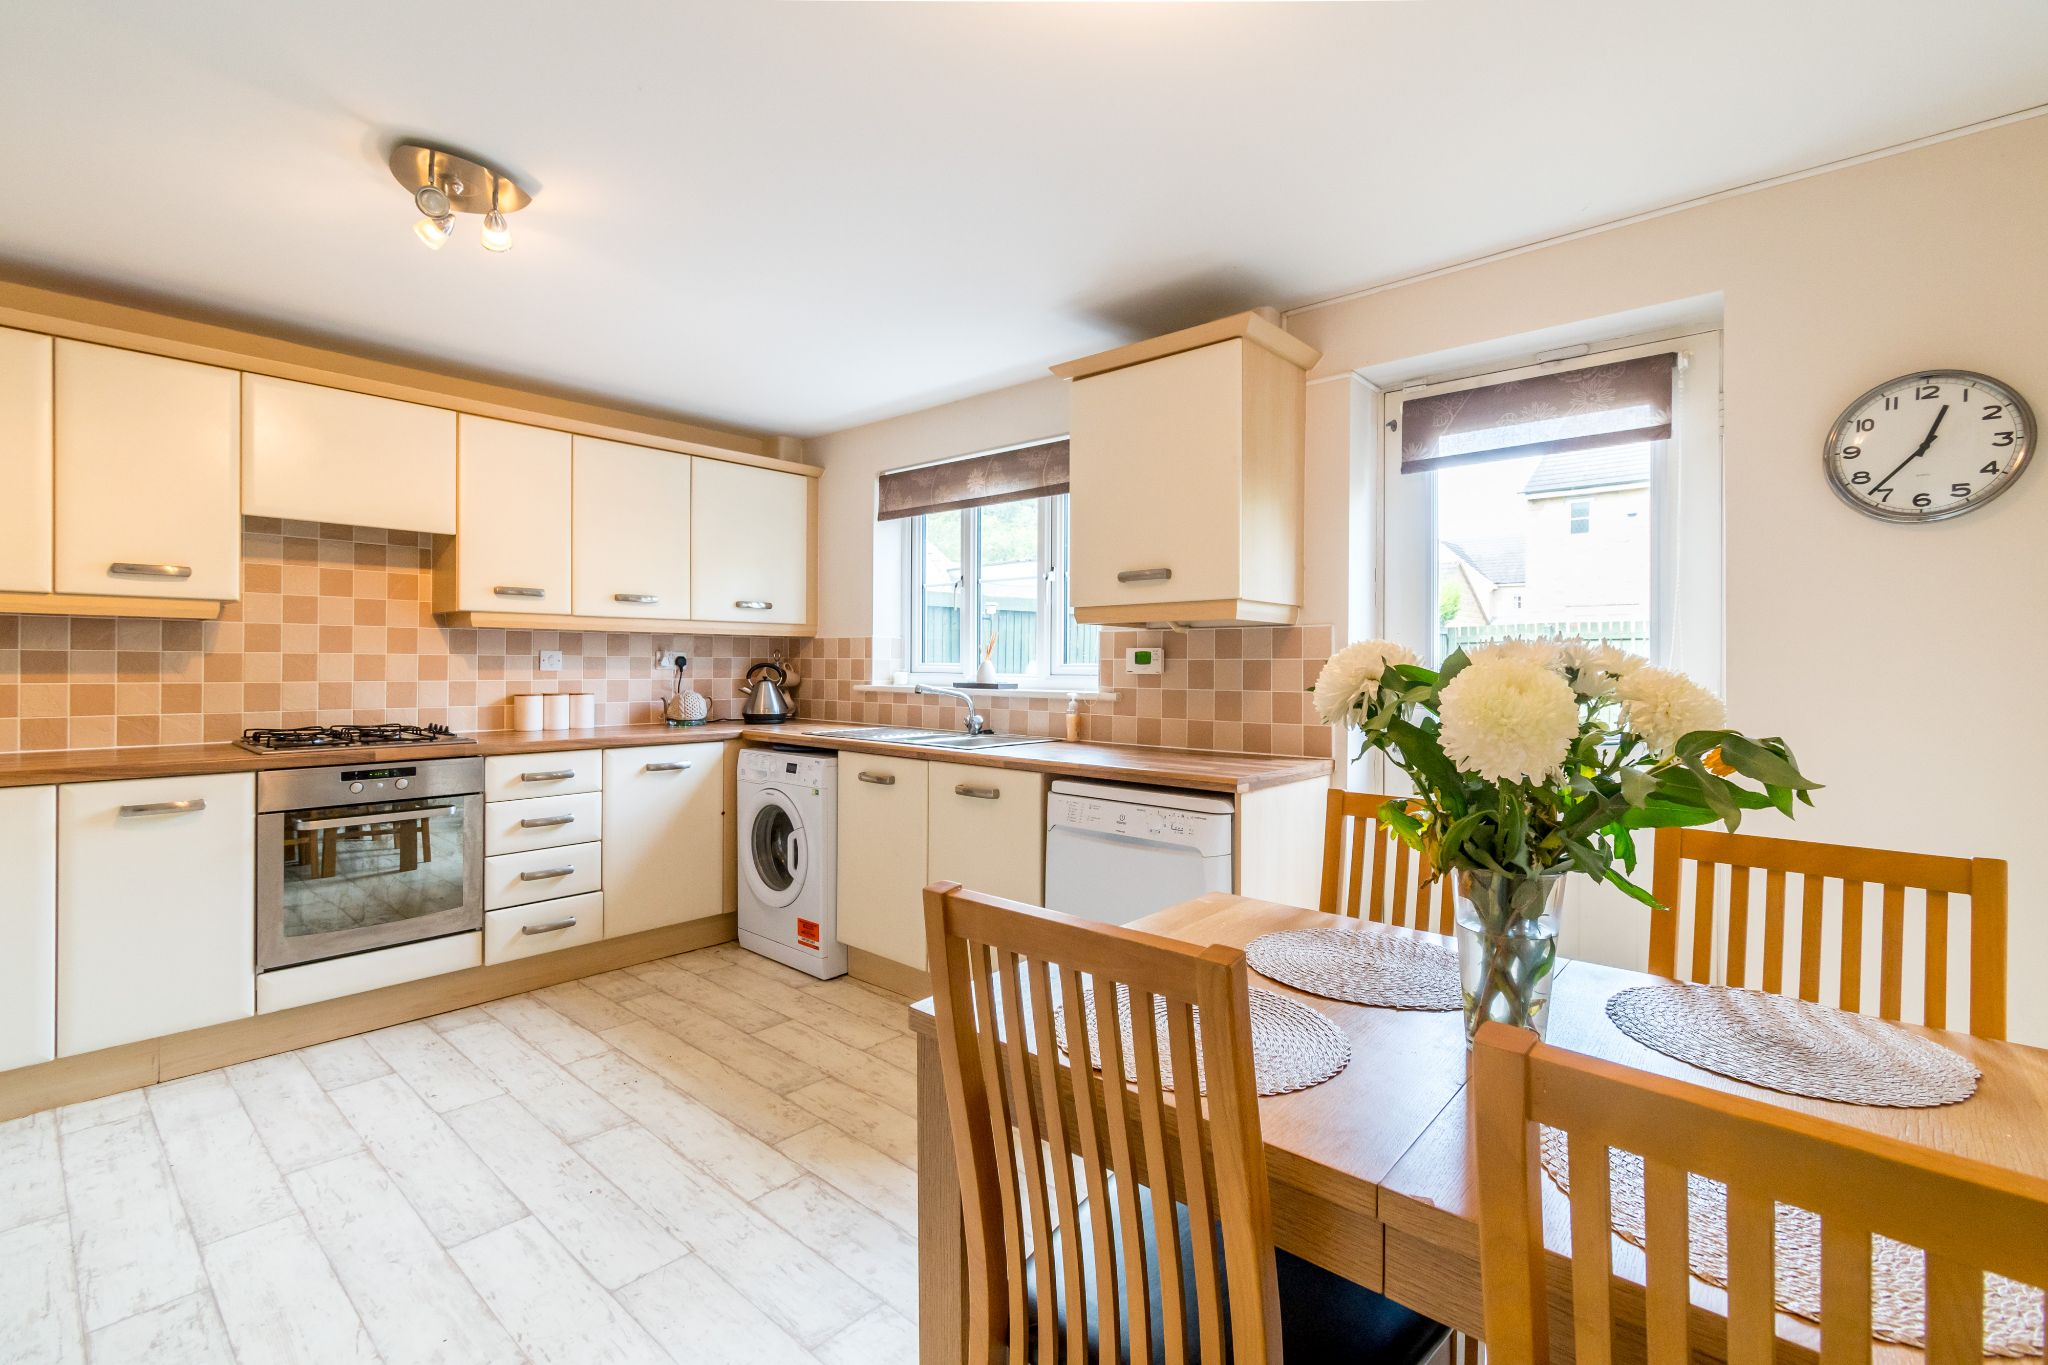 4 bedroom mid terraced house SSTC in Brighouse - Property photograph